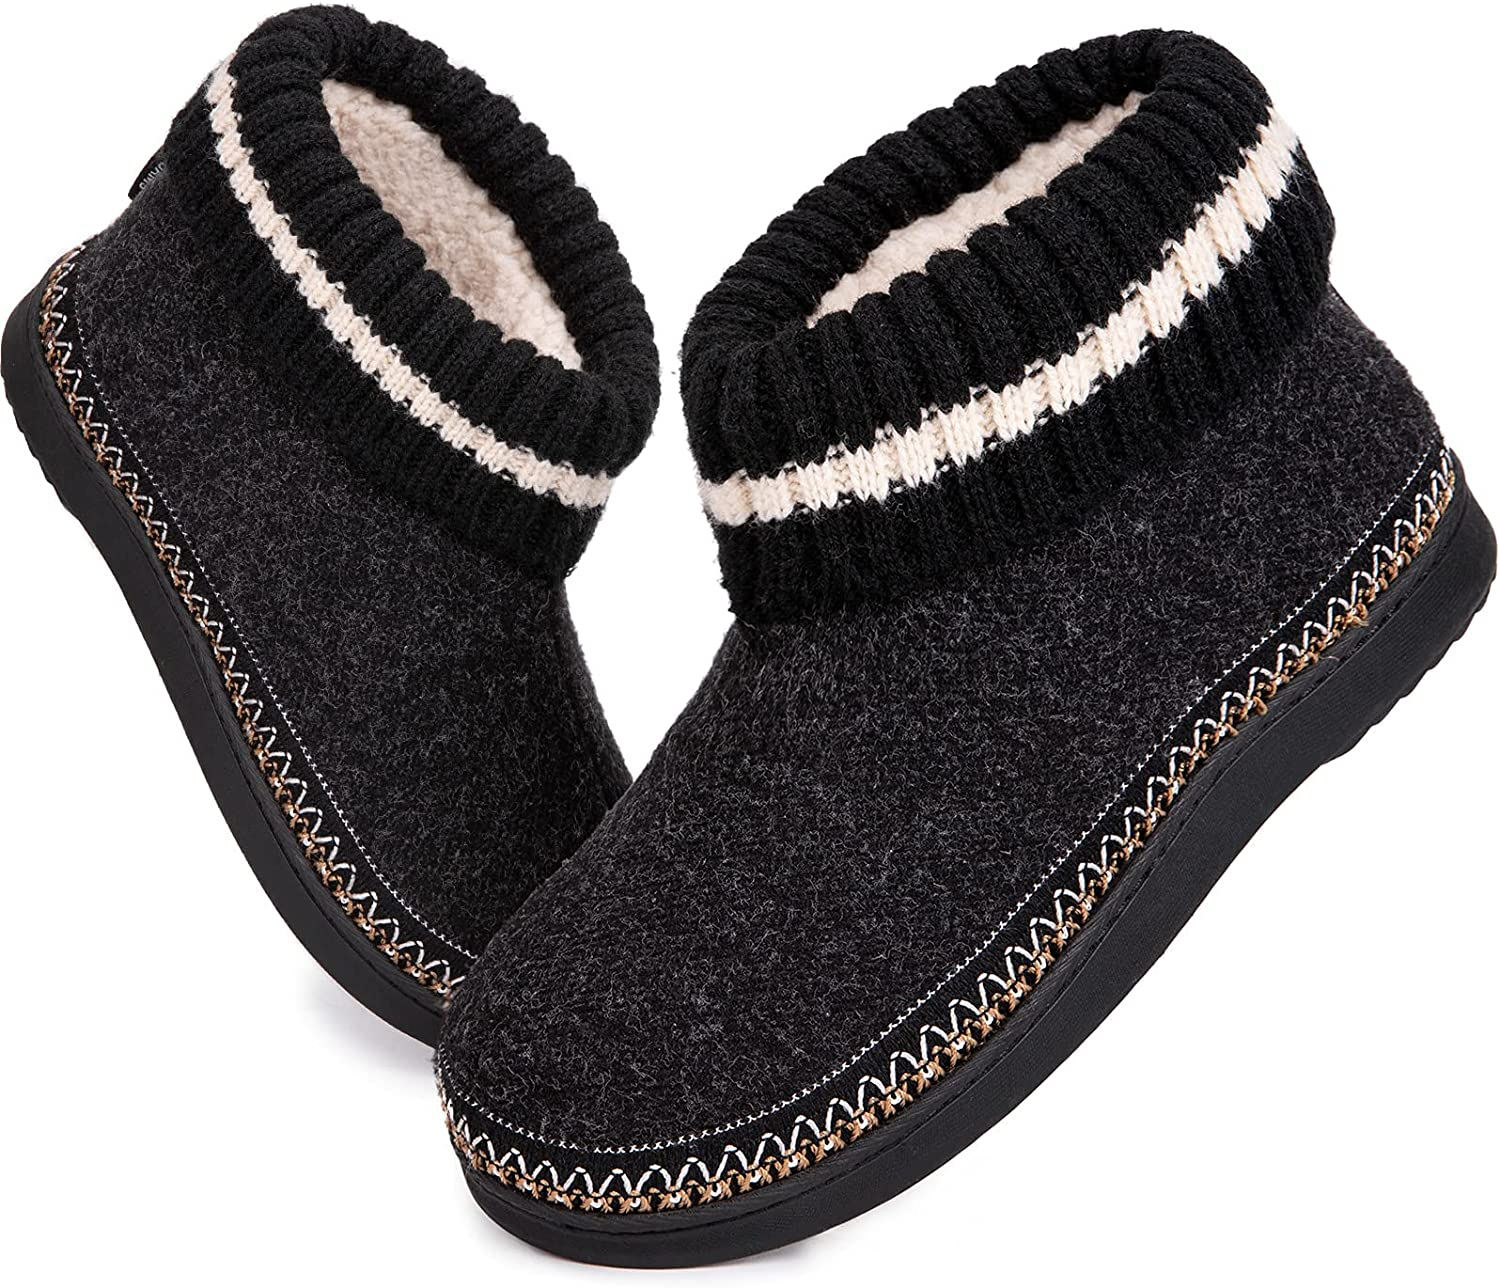 EverFoams Women's Comfy Memory Super Some reservation intense SALE Bootie Slippers Foam